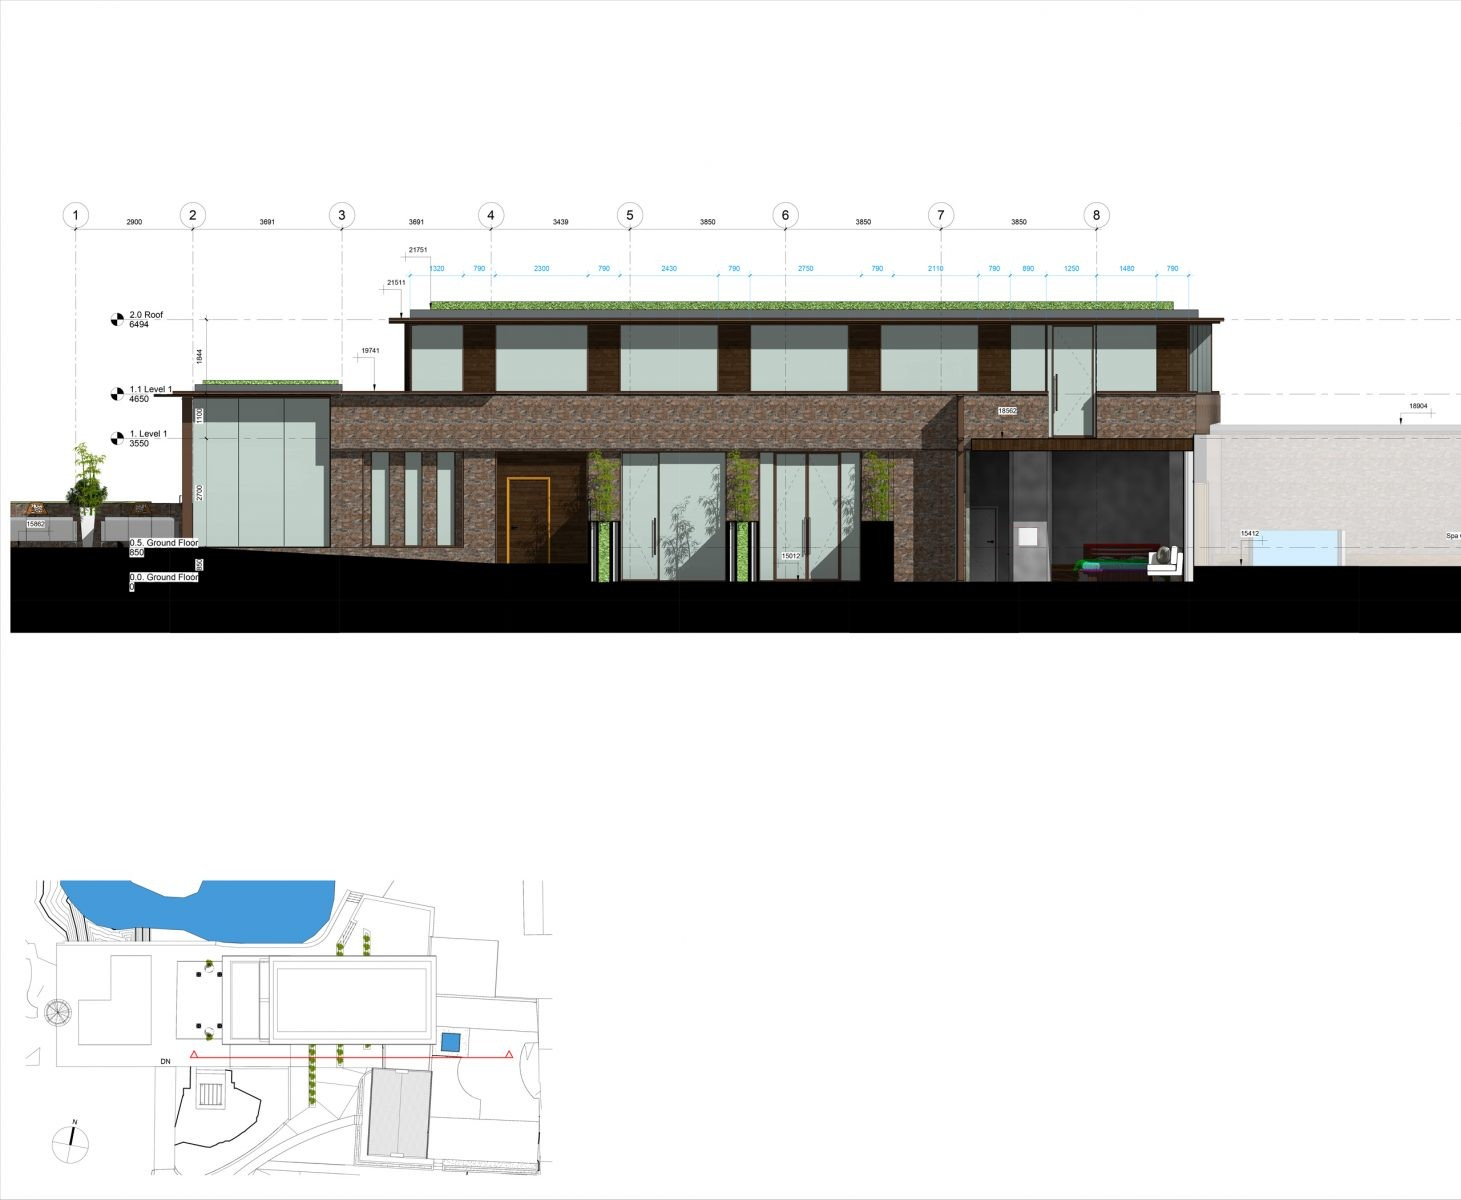 jersey hotel annex extension hospitality architecture jersey architects03